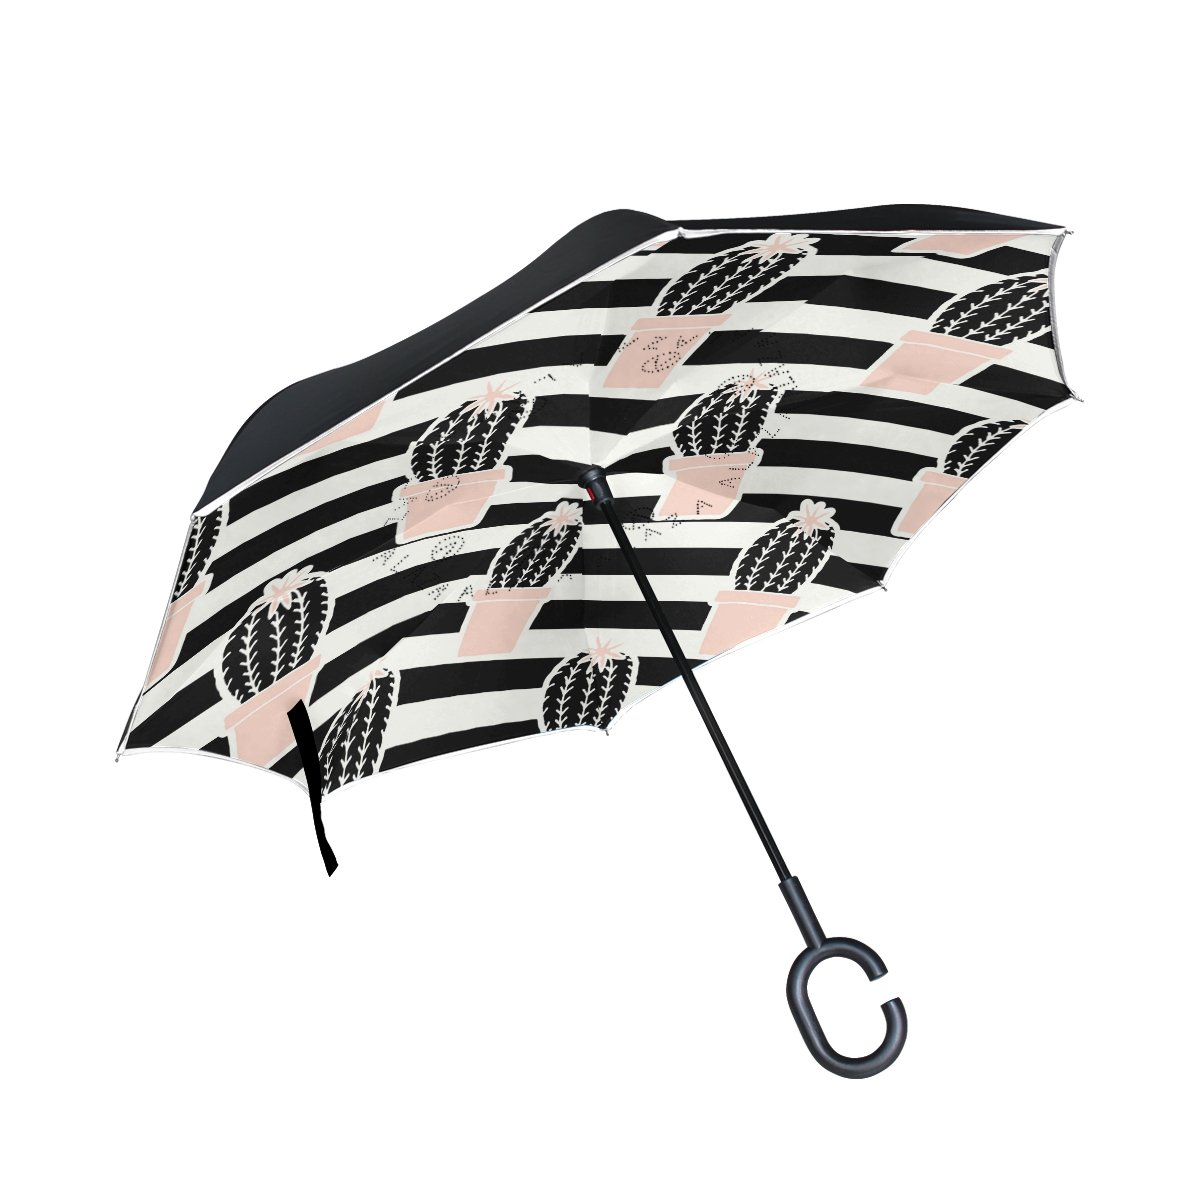 giovanior Hand Drawn Cactus Inverted Double Layer Straight Umbrellas inside-outリバーシブル傘C型のハンドルの雨太陽車使用   B07D7TLHKQ